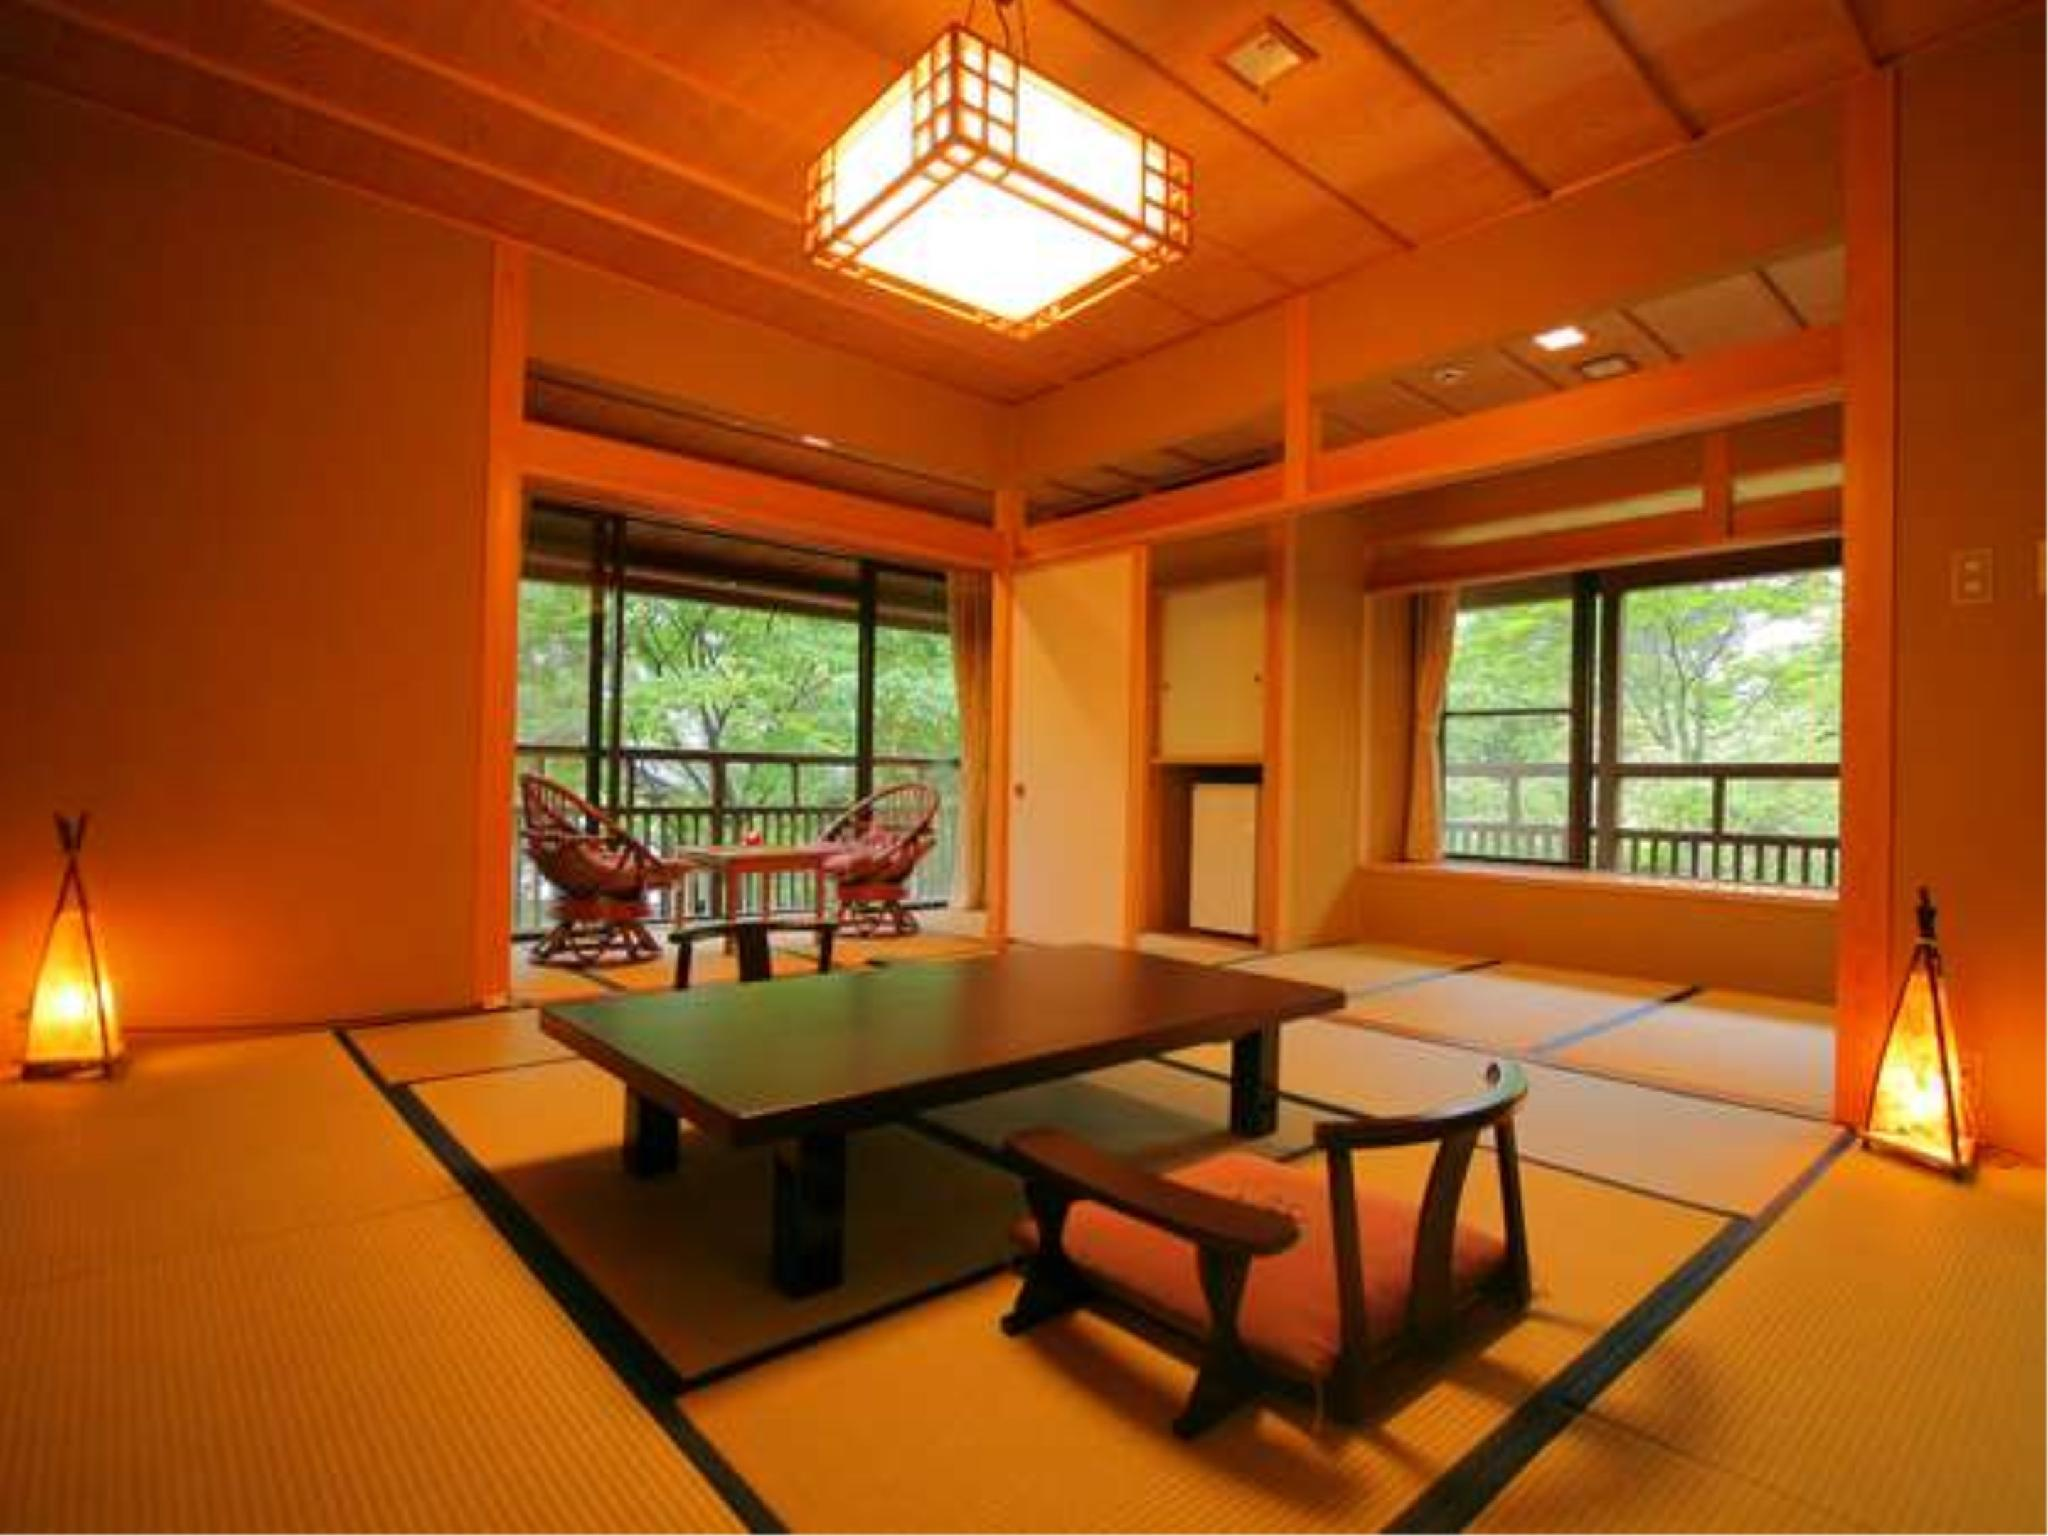 Detached Japanese-style Room